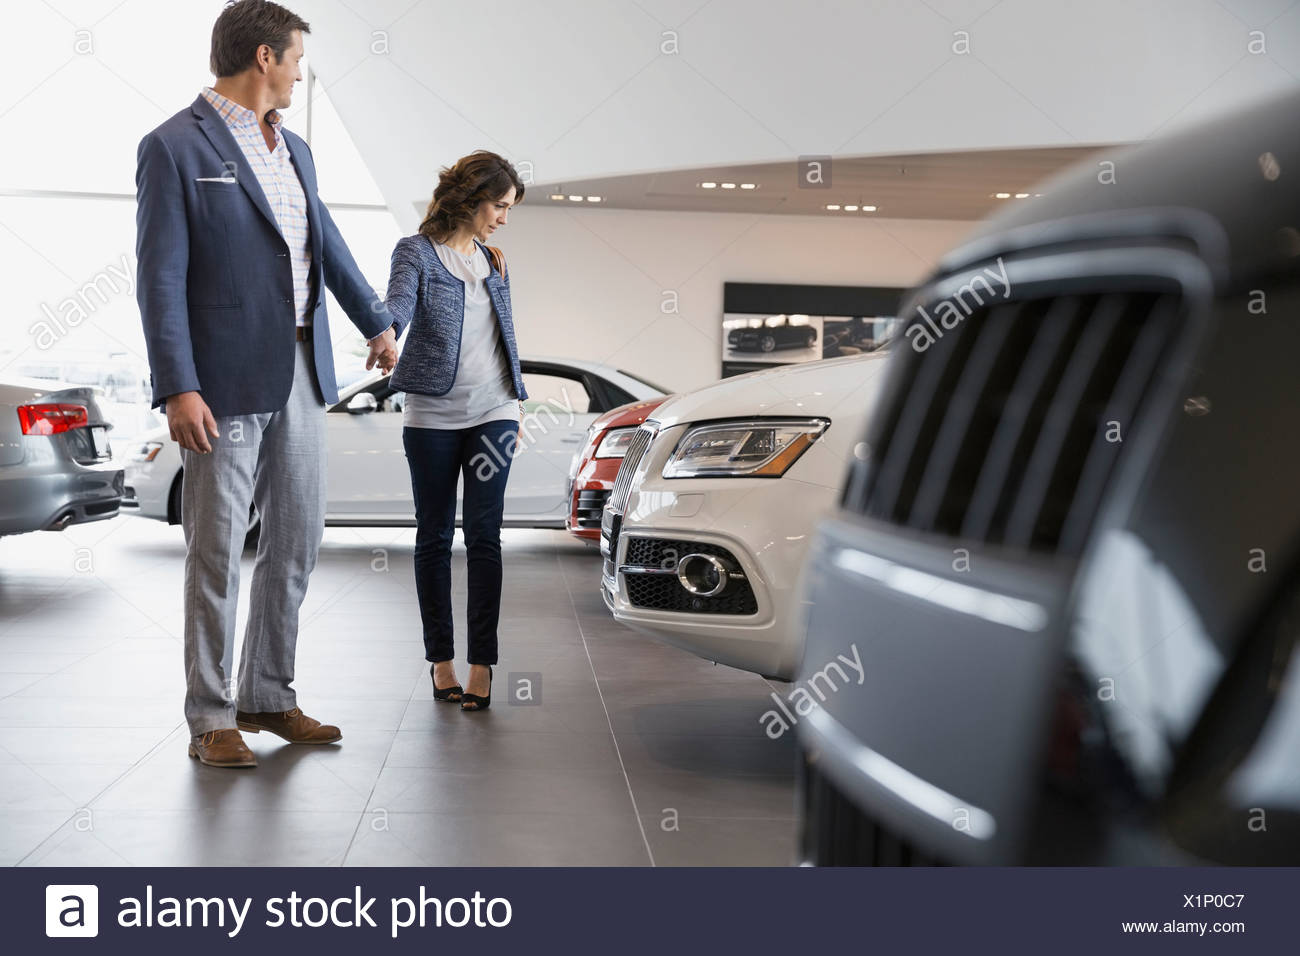 Couple shopping in car dealership showroom - Stock Image